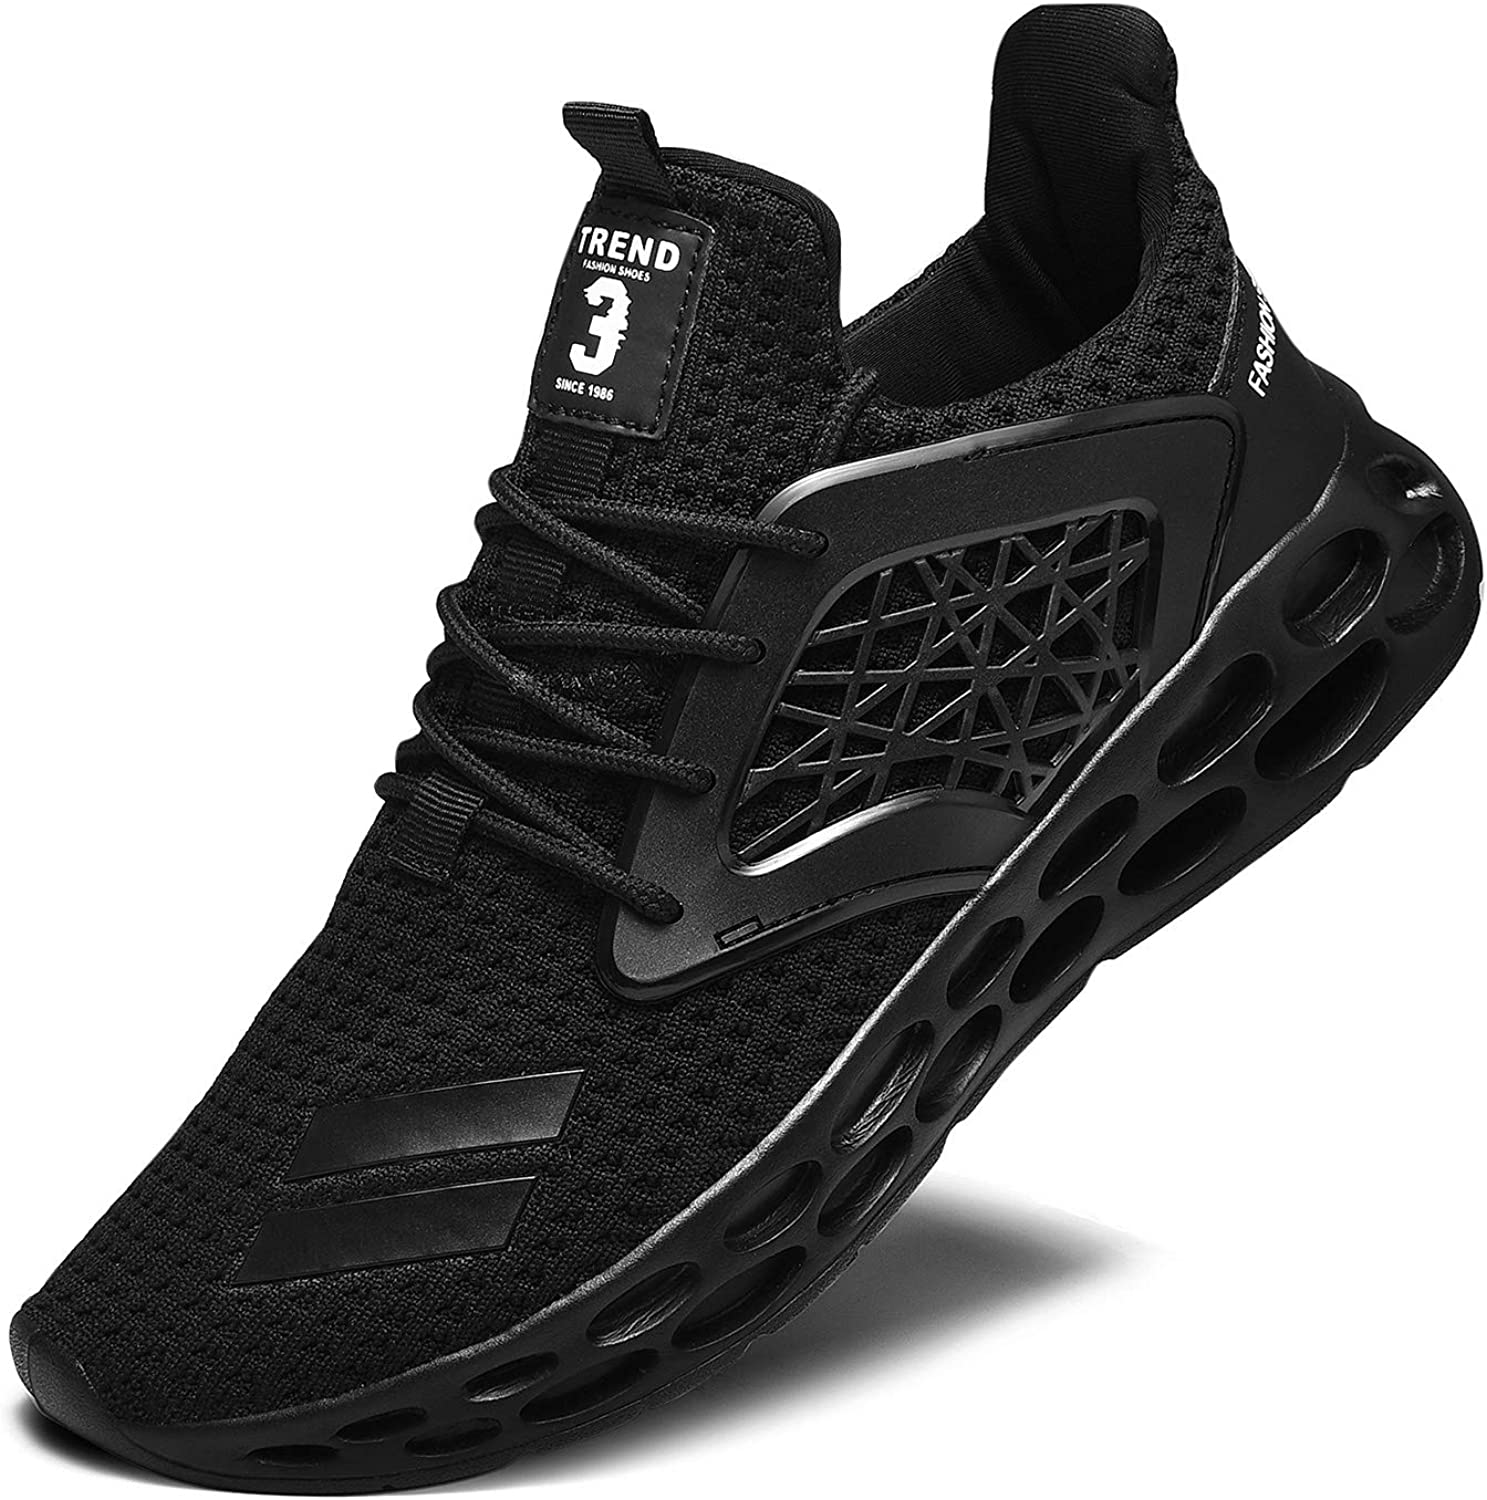 RELANCE Men's Running Shoes, Lightweight Casual Sneakers Workout Sport Athletic Shoes for Training Tennis Jogging Footwear